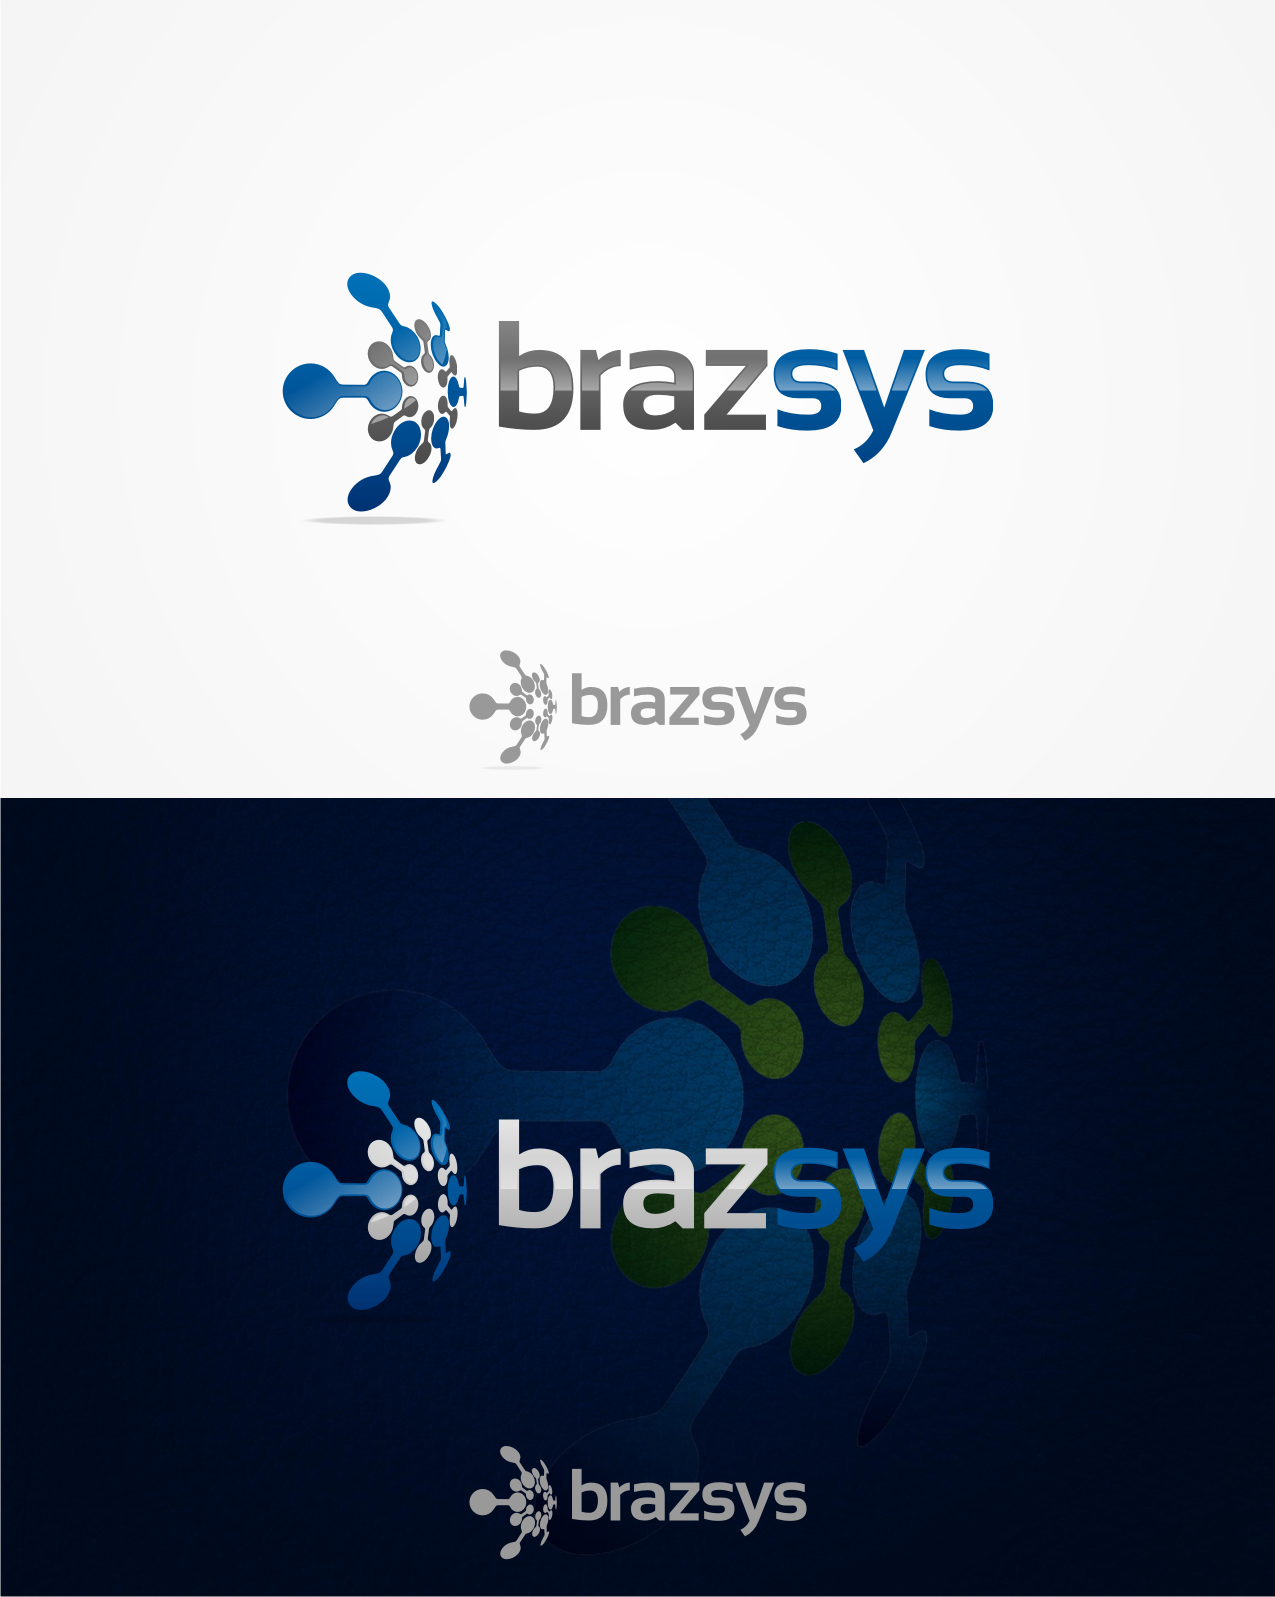 New logo wanted for Brazsys